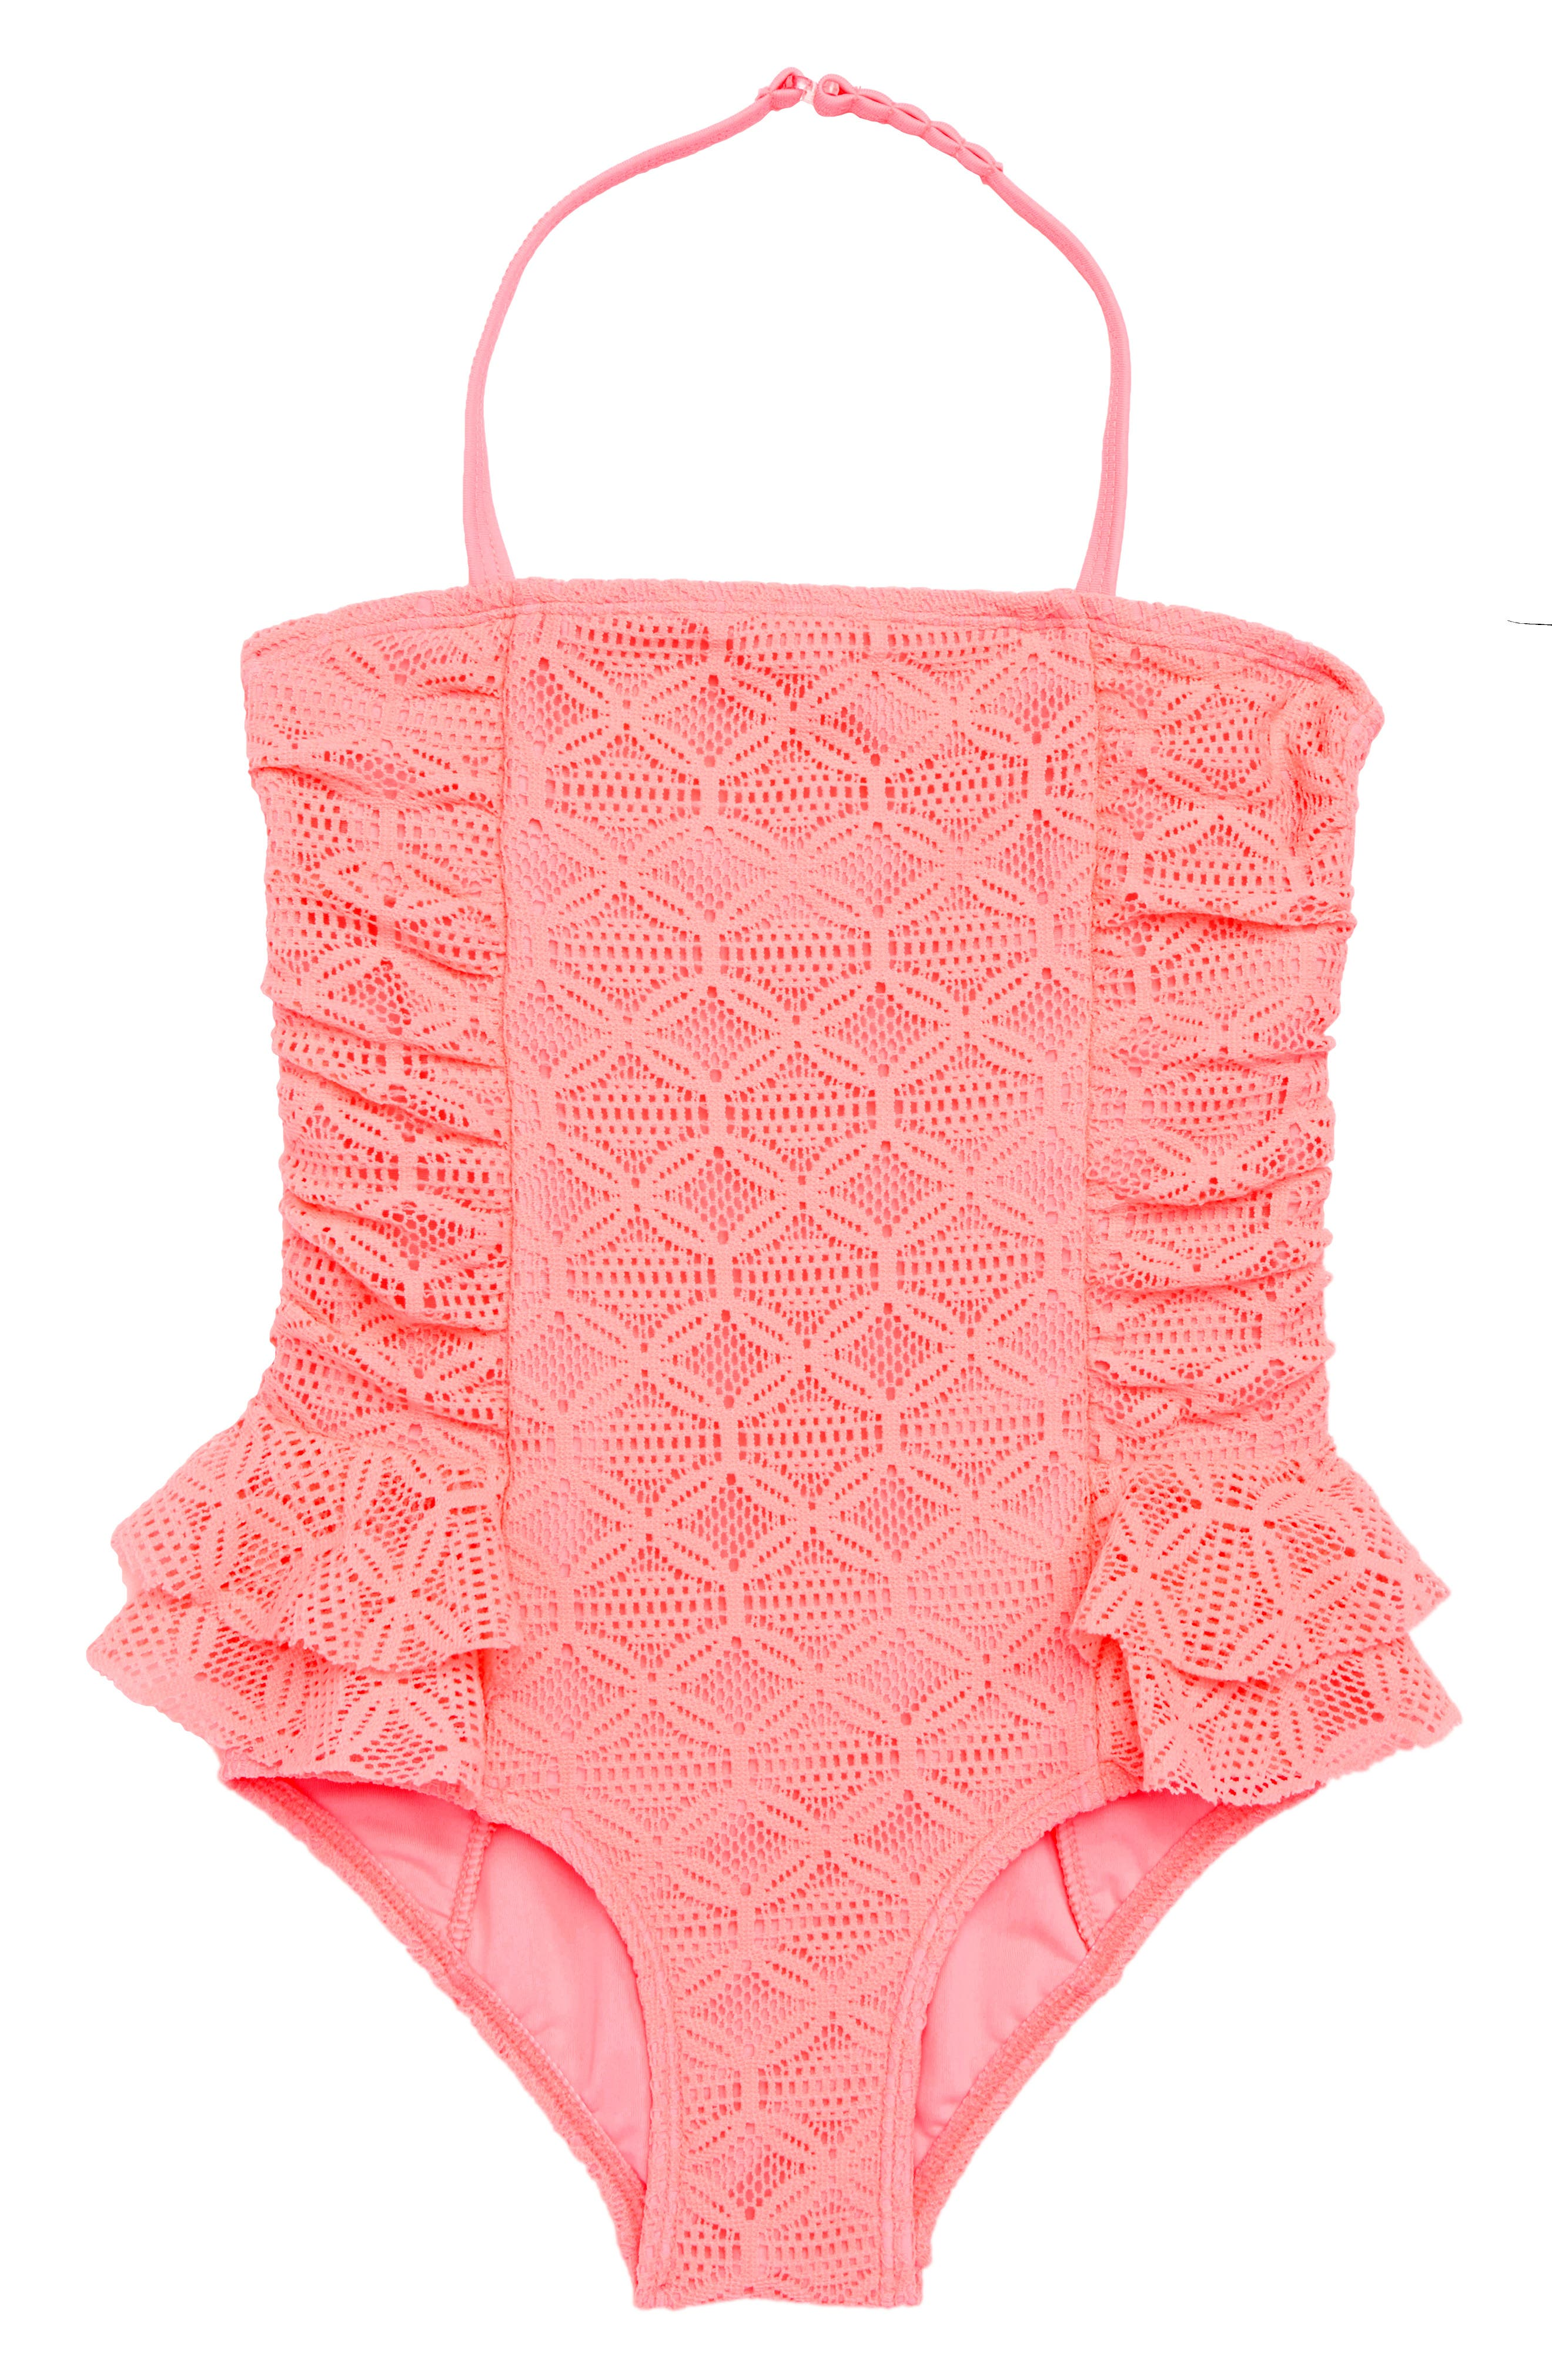 Kitty Lace One-Piece Swimsuit,                         Main,                         color, CORAL